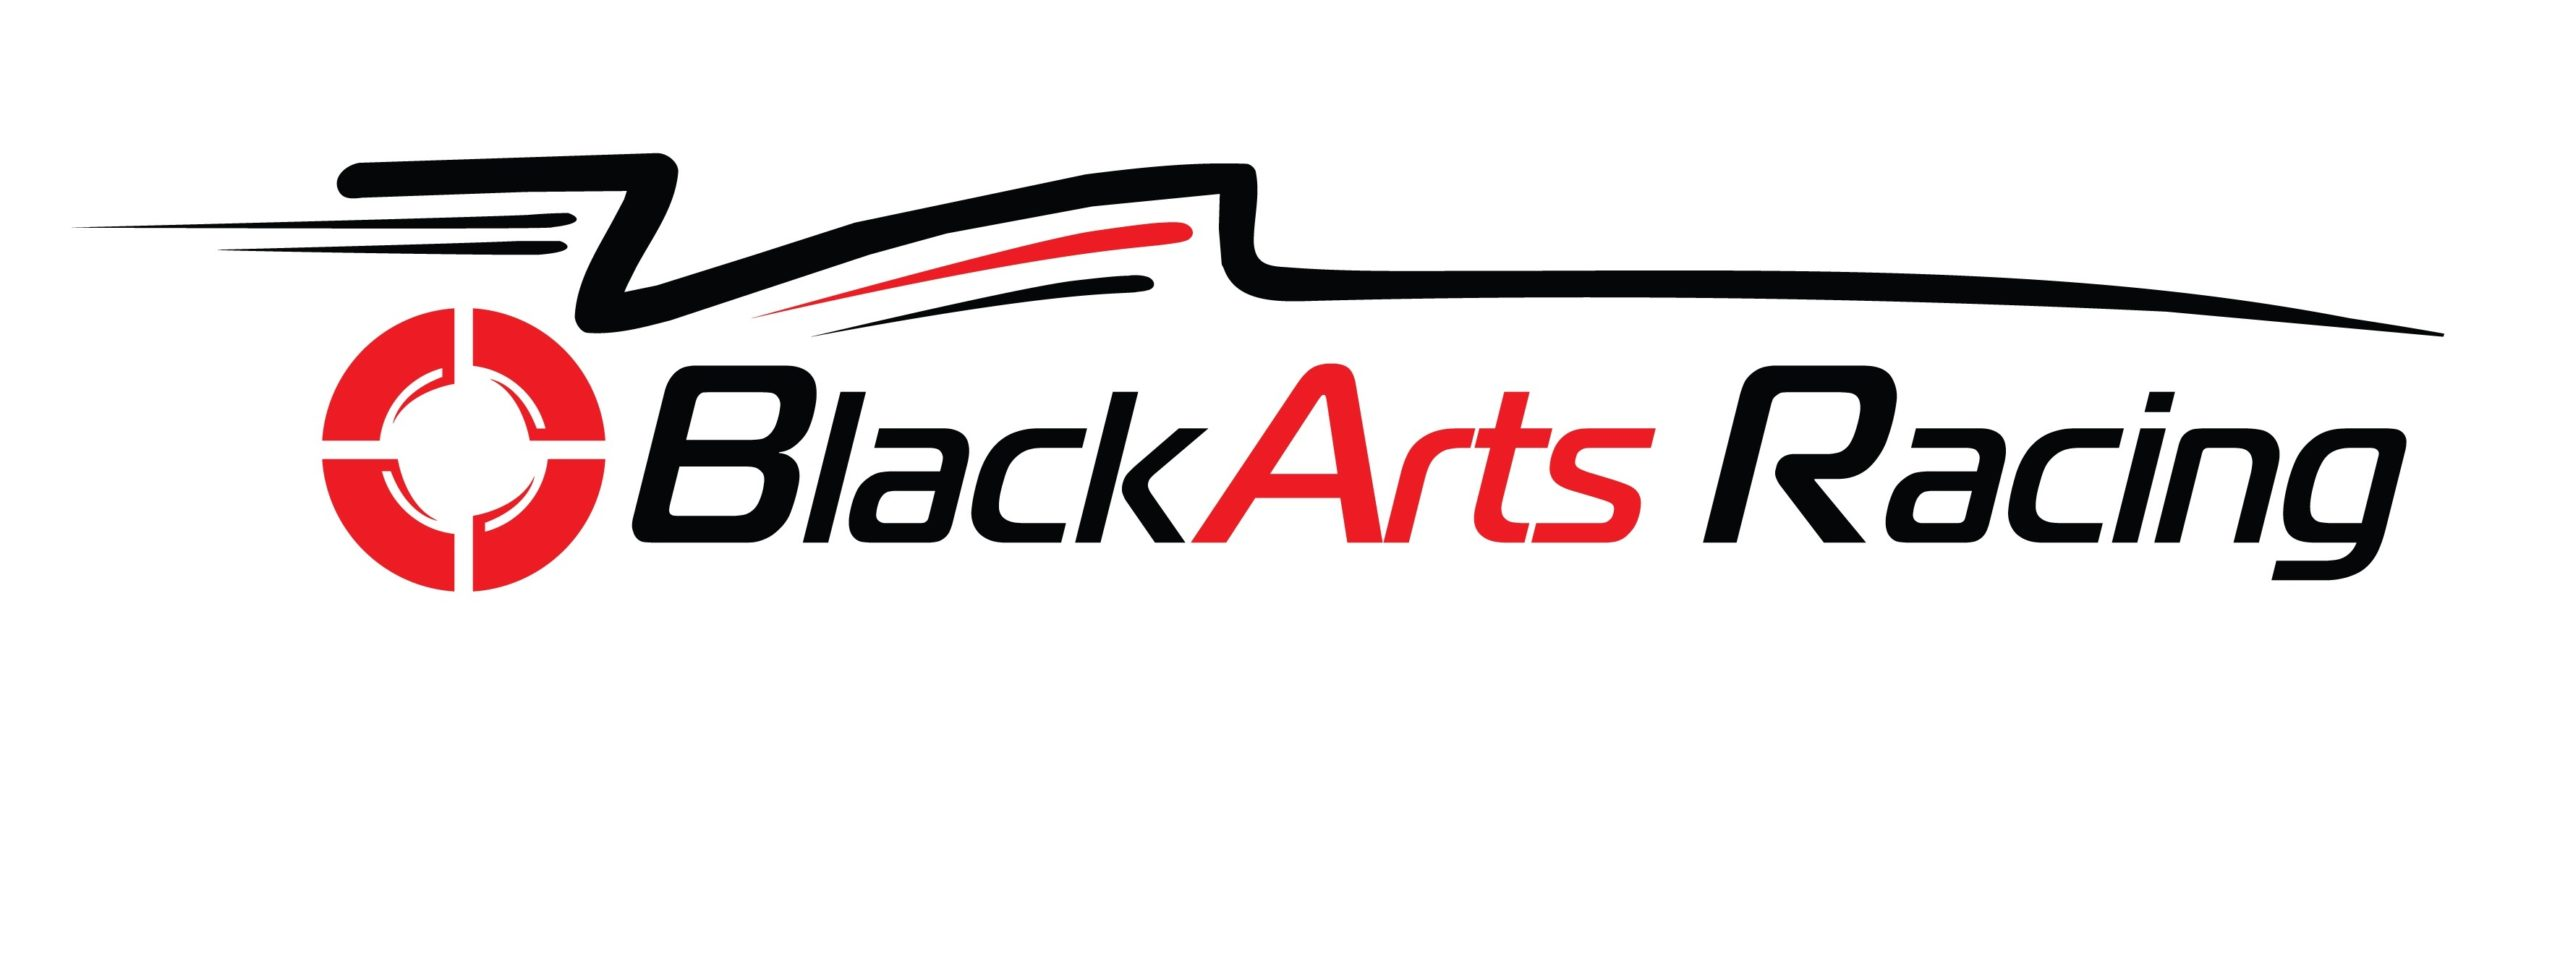 BlackArts Racing